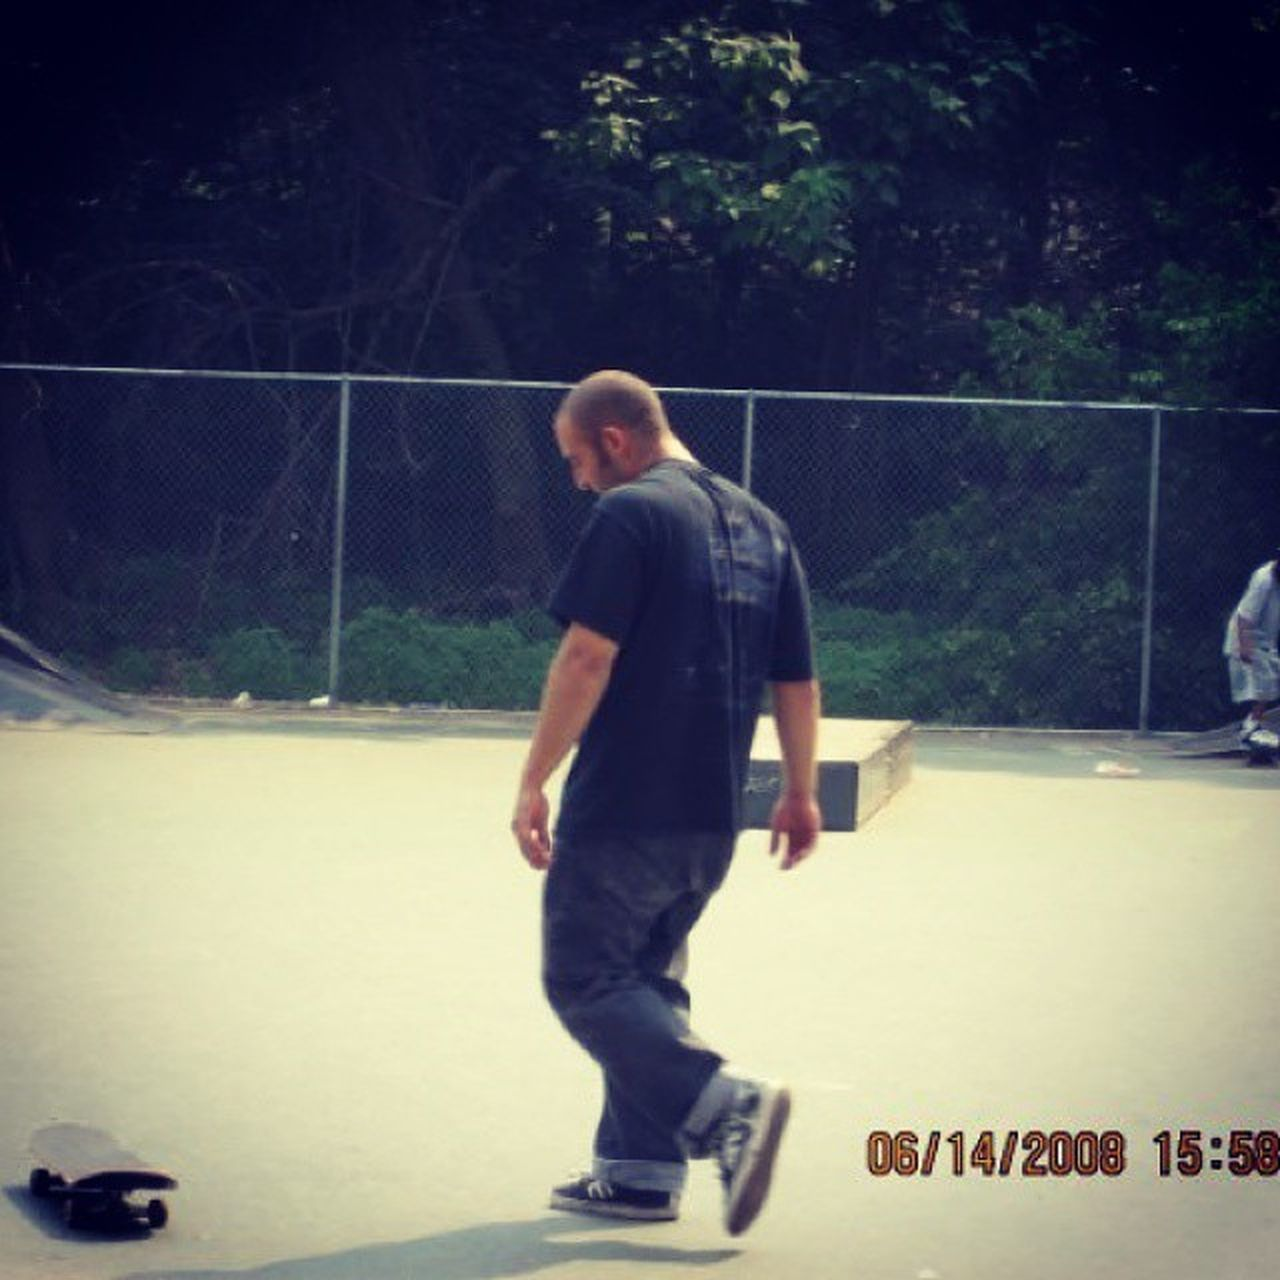 The legend Crazy Carl. TBT  Wallpark Beerme Crazy Carl @beerme_ @wallparksesh @dabuick @gnarhammered @putty_pop @brendonshipley @realstevej @chickenwang30